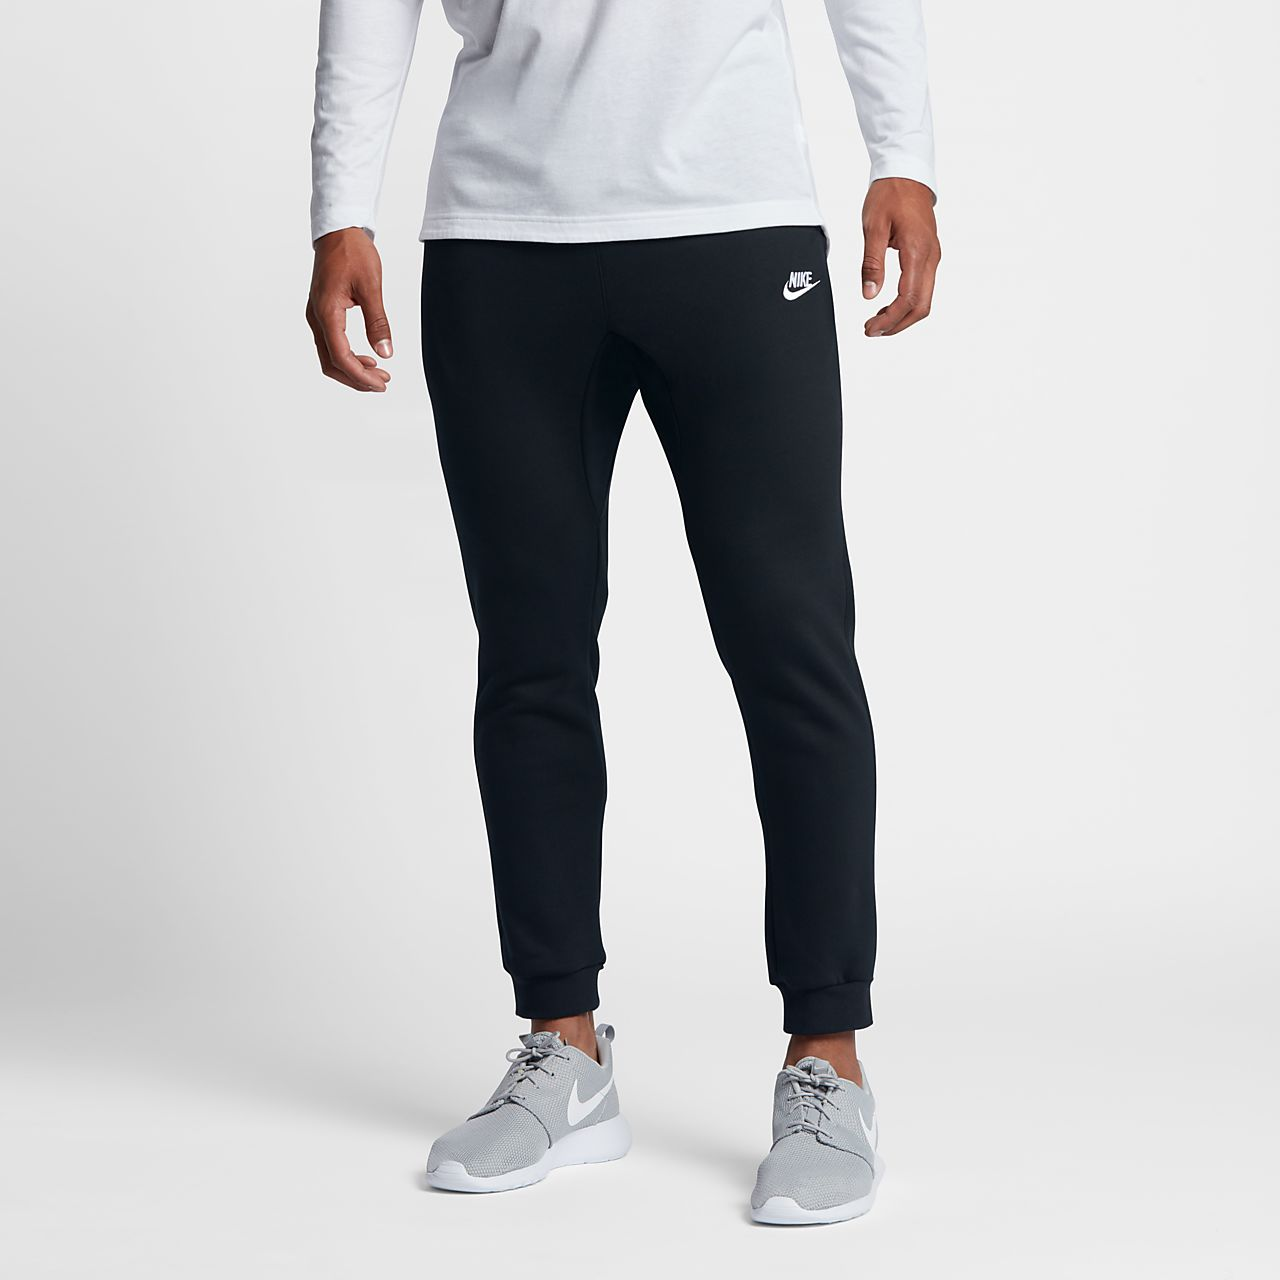 buy popular 0dd38 67fe5 Low Resolution Nike Sportswear Mens Joggers Nike Sportswear Mens Joggers